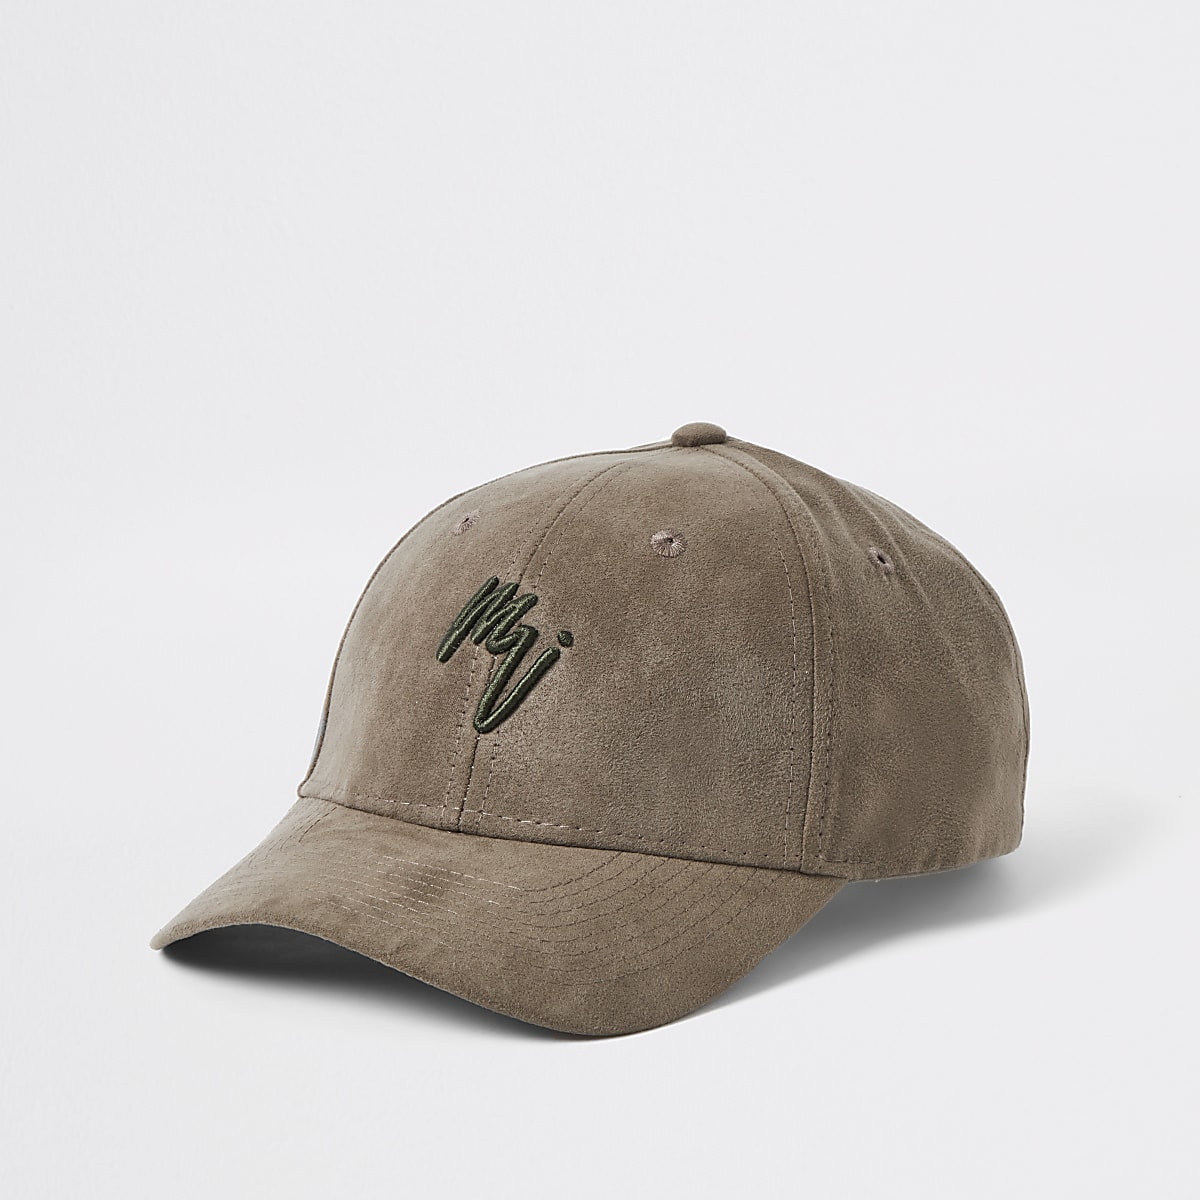 Khaki embroidered faux suede cap